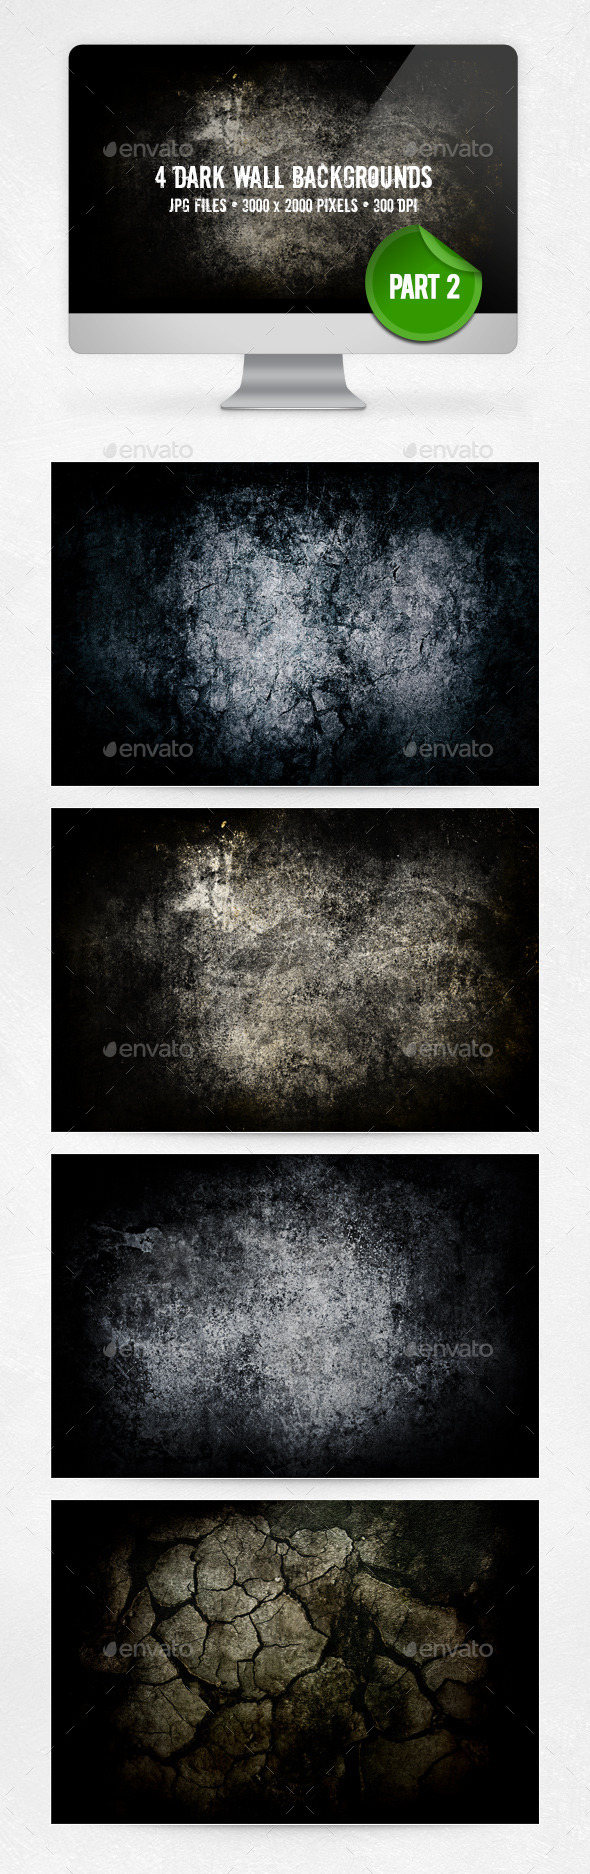 Dark Wall Backgrounds - Part 2 - Abstract Backgrounds